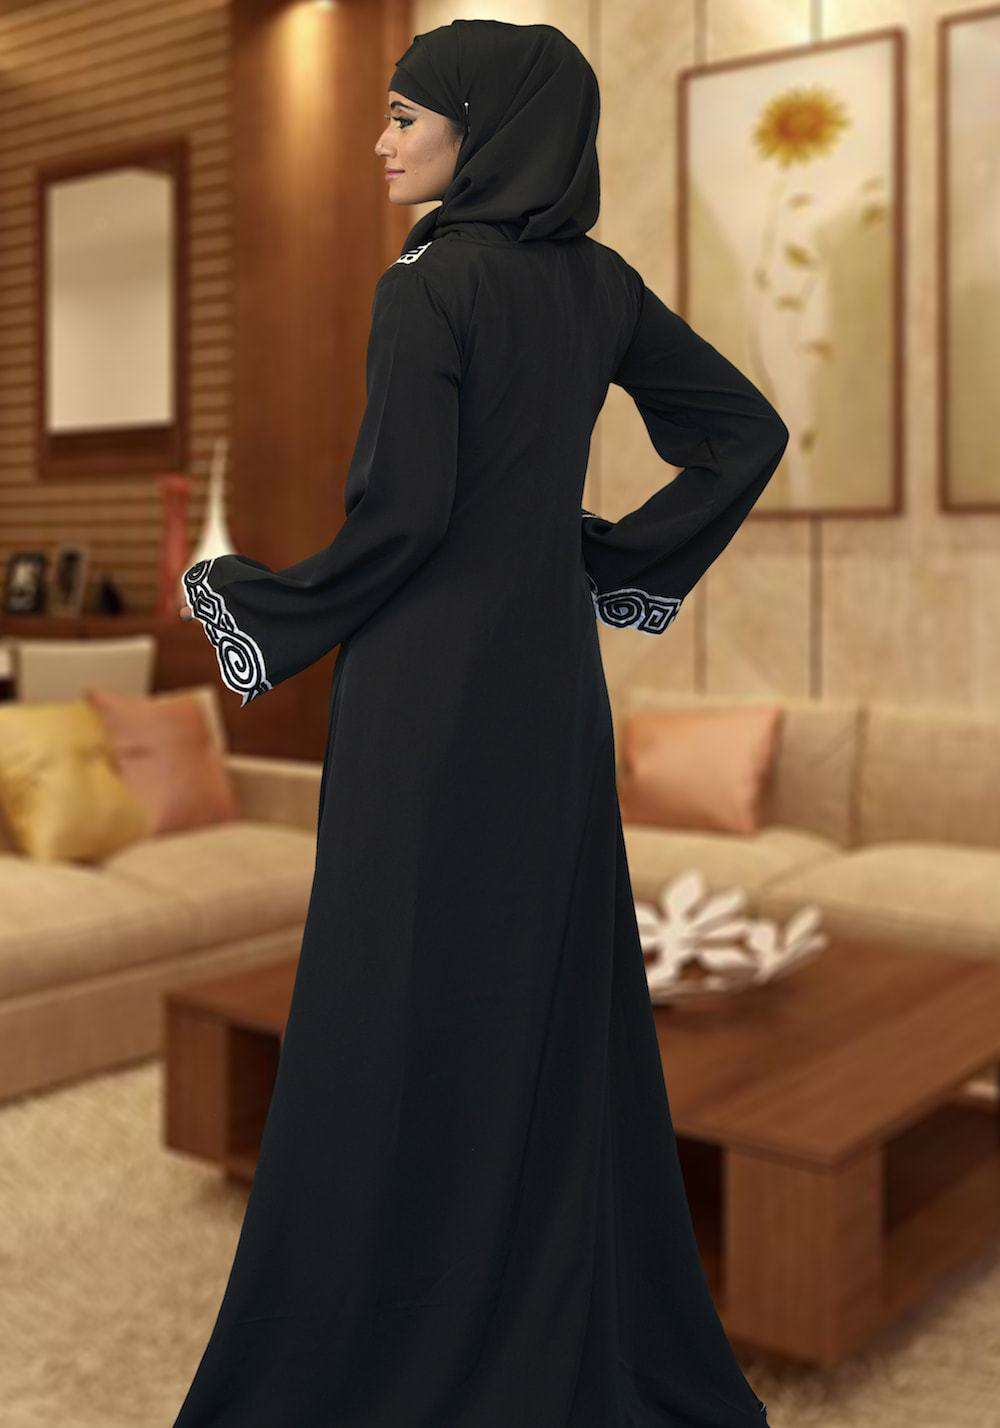 Black Modest Evening Embroidered Islamic Dress MYPF1379